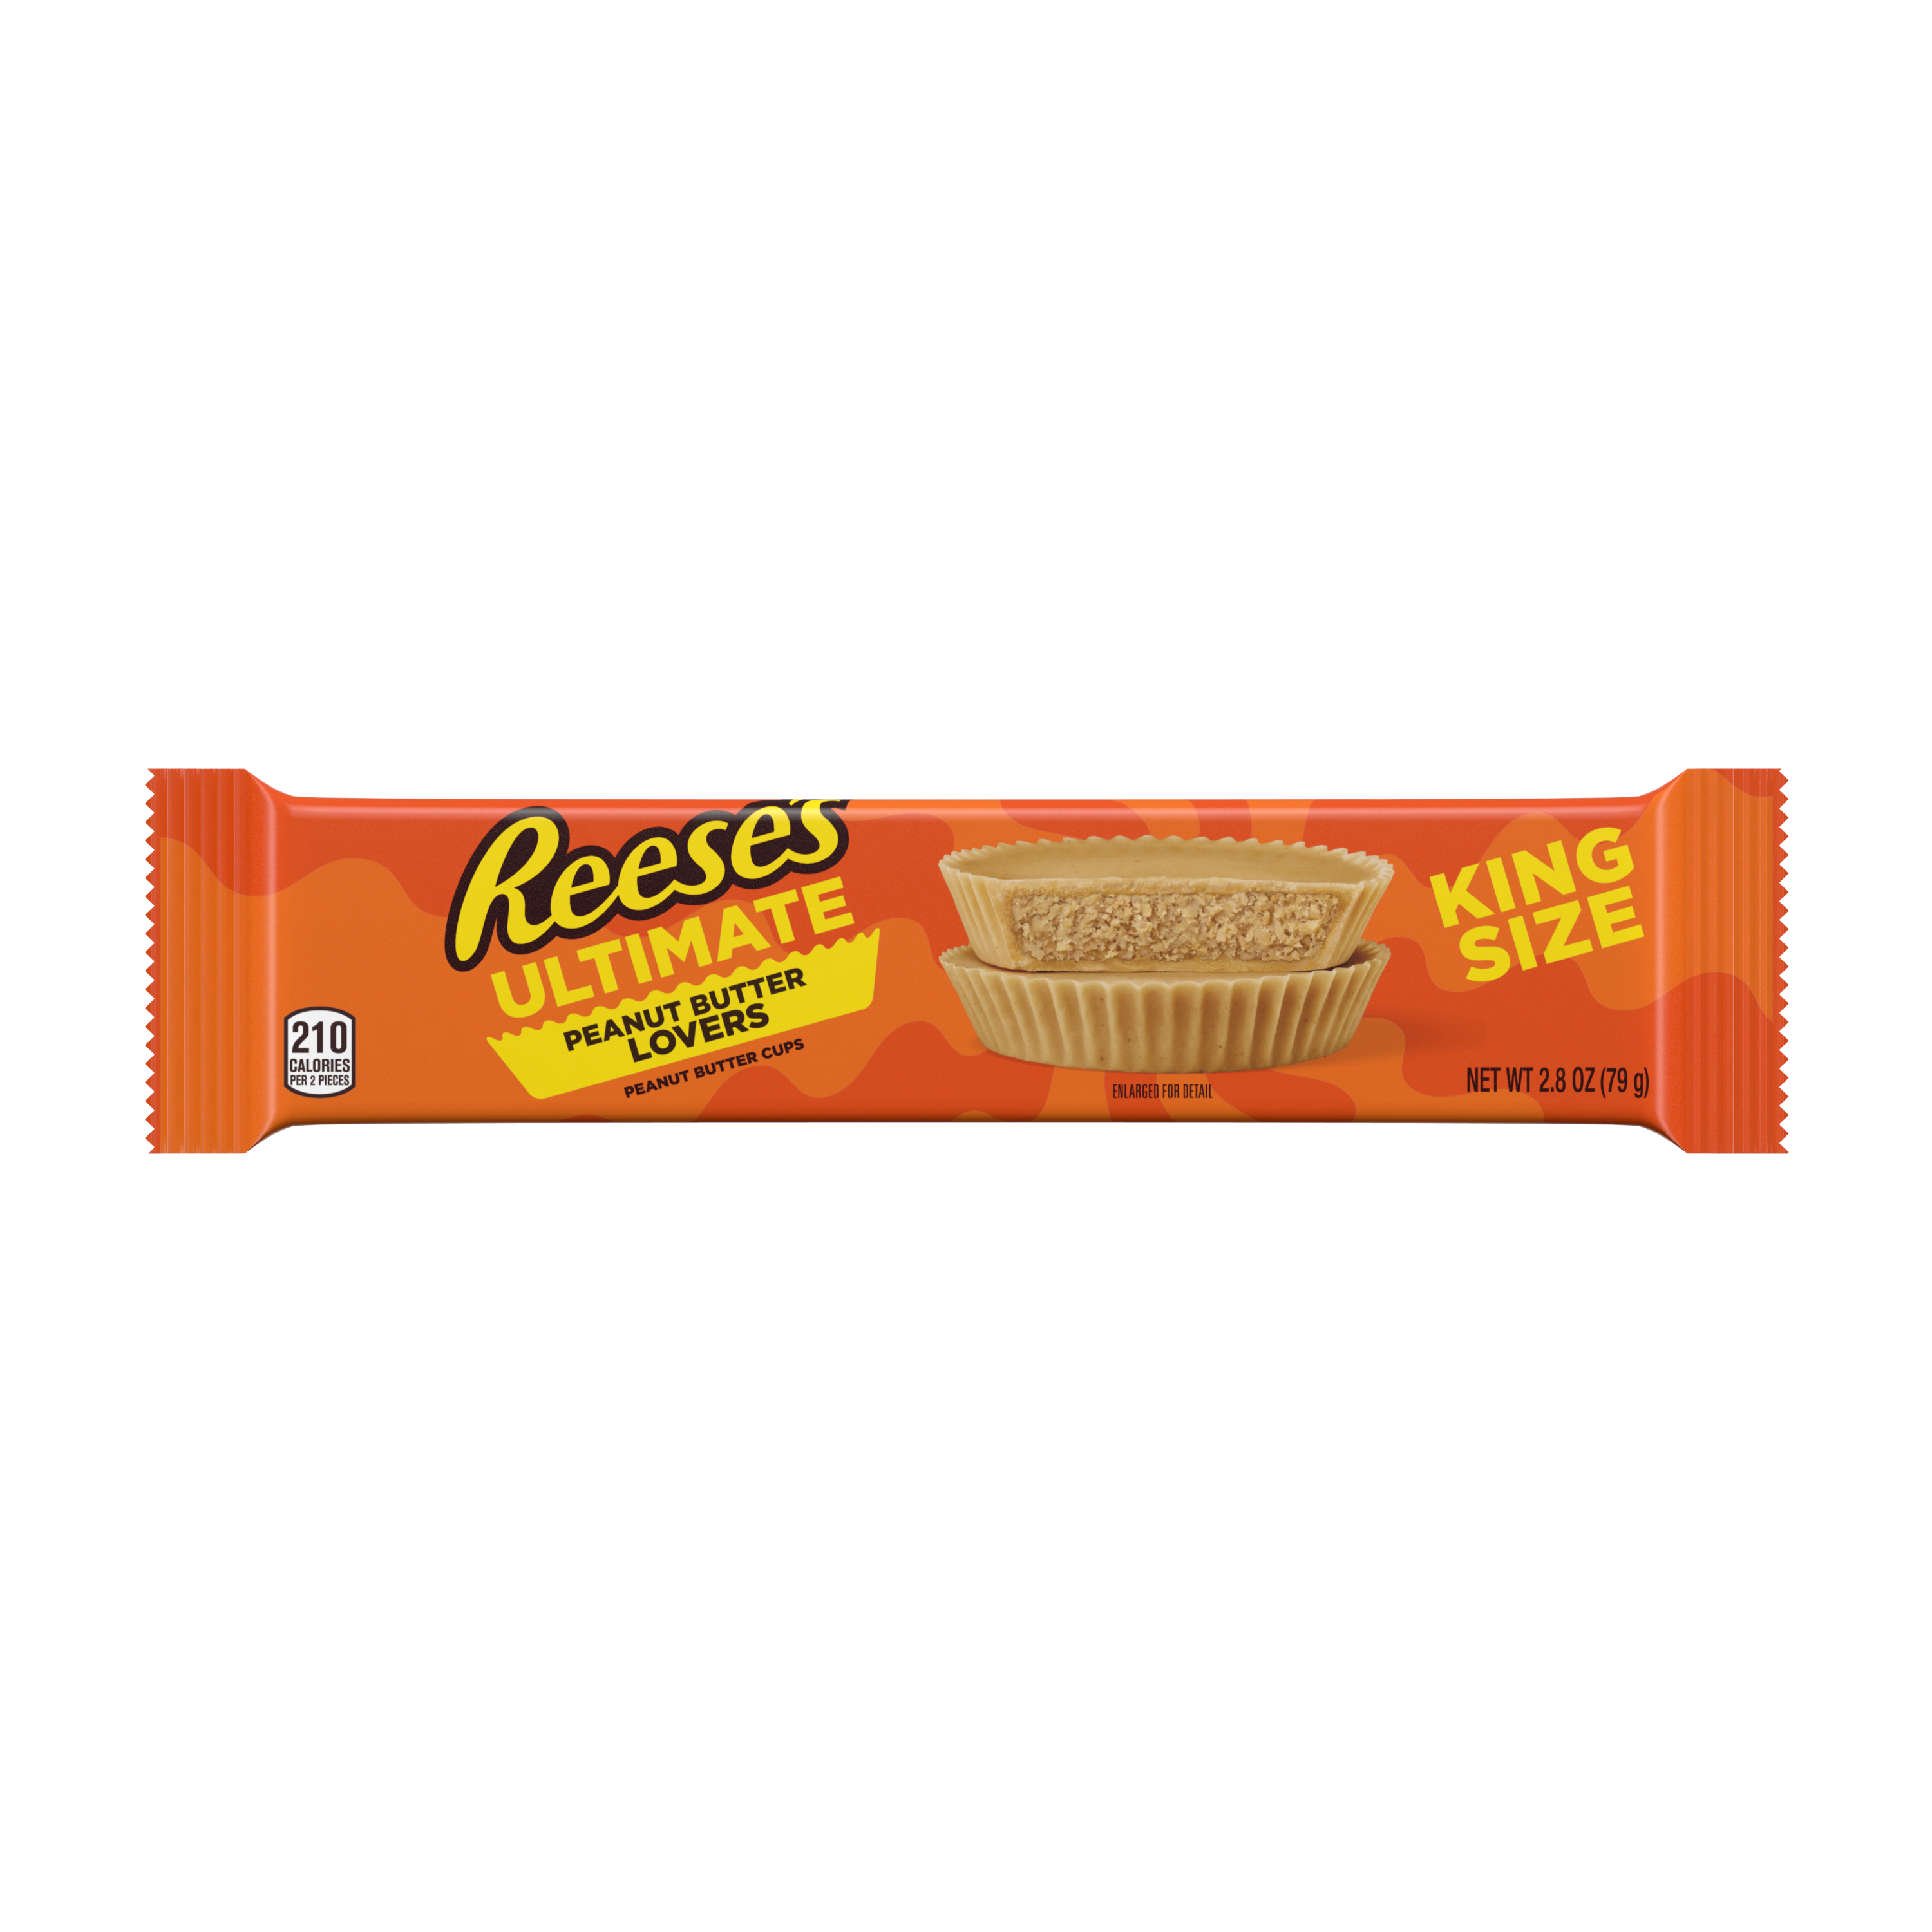 REESE'S Ultimate Peanut Butter Lovers King Size Peanut Butter Cups, 2.8 oz - Front of Package